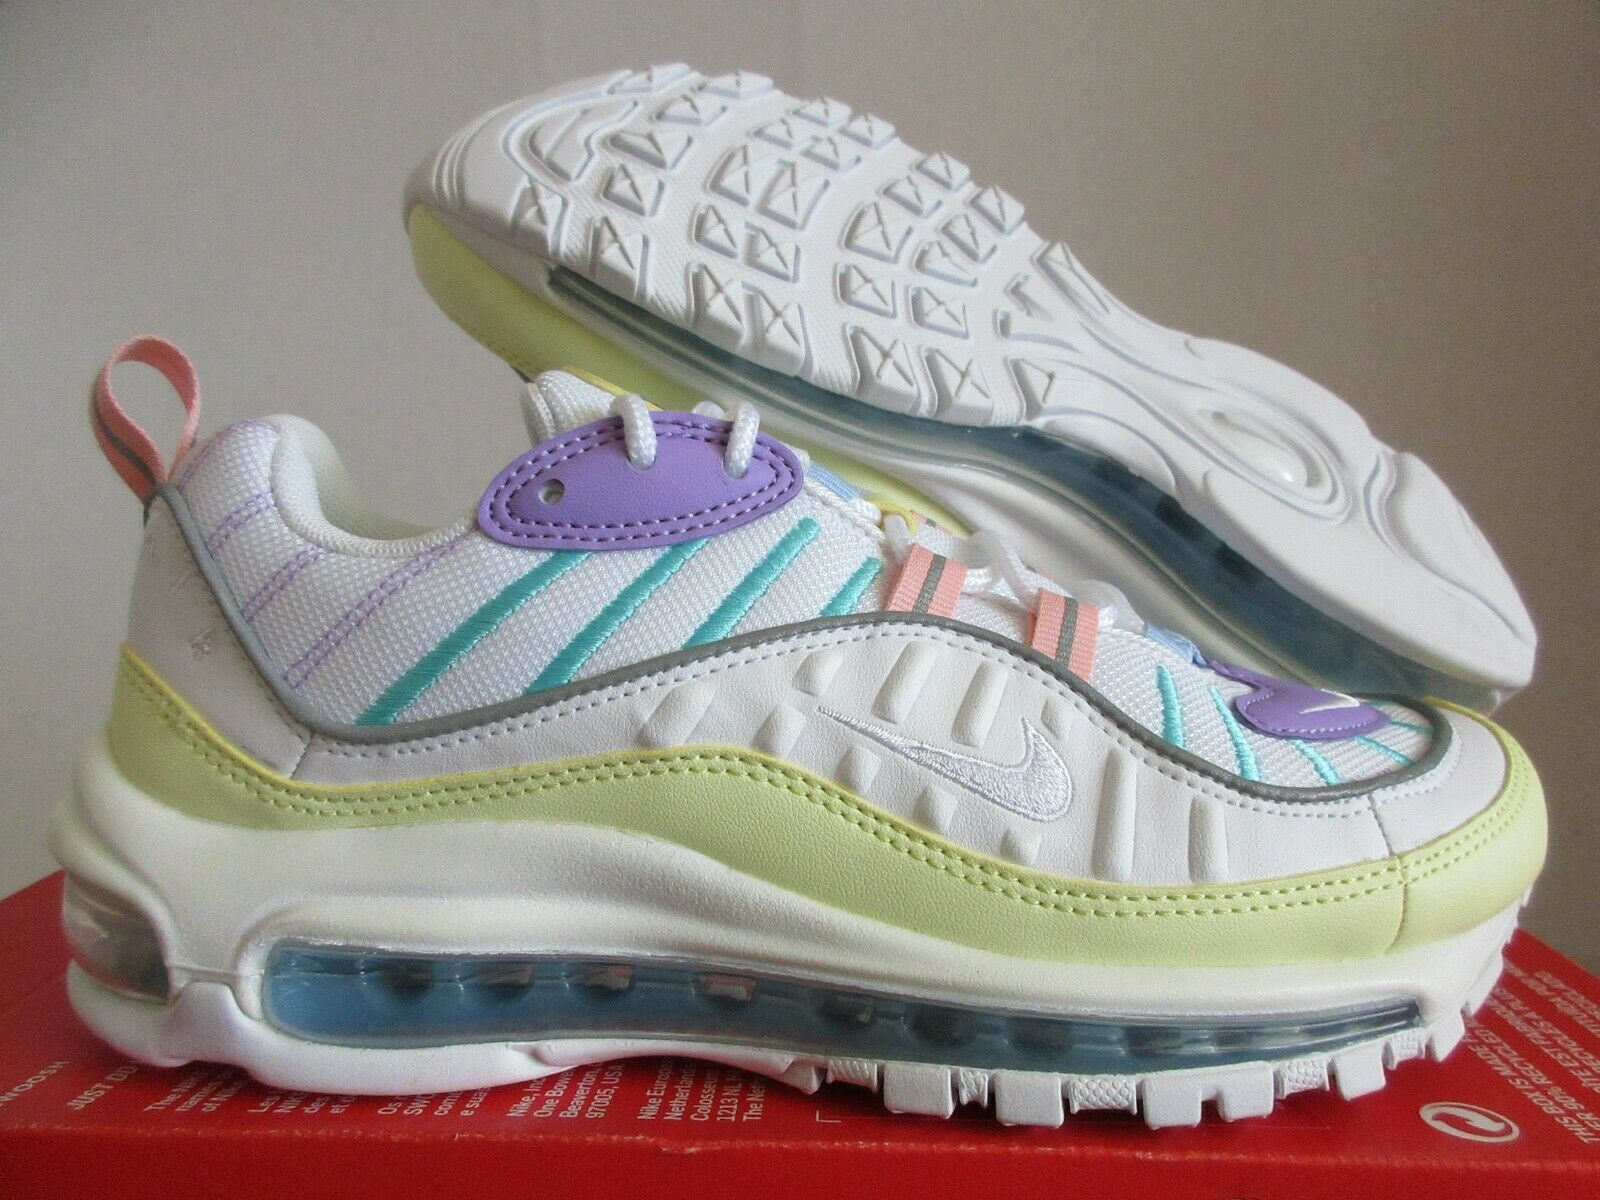 Size 7 - Nike Air Max 98 Easter Pastels for sale online | eBay